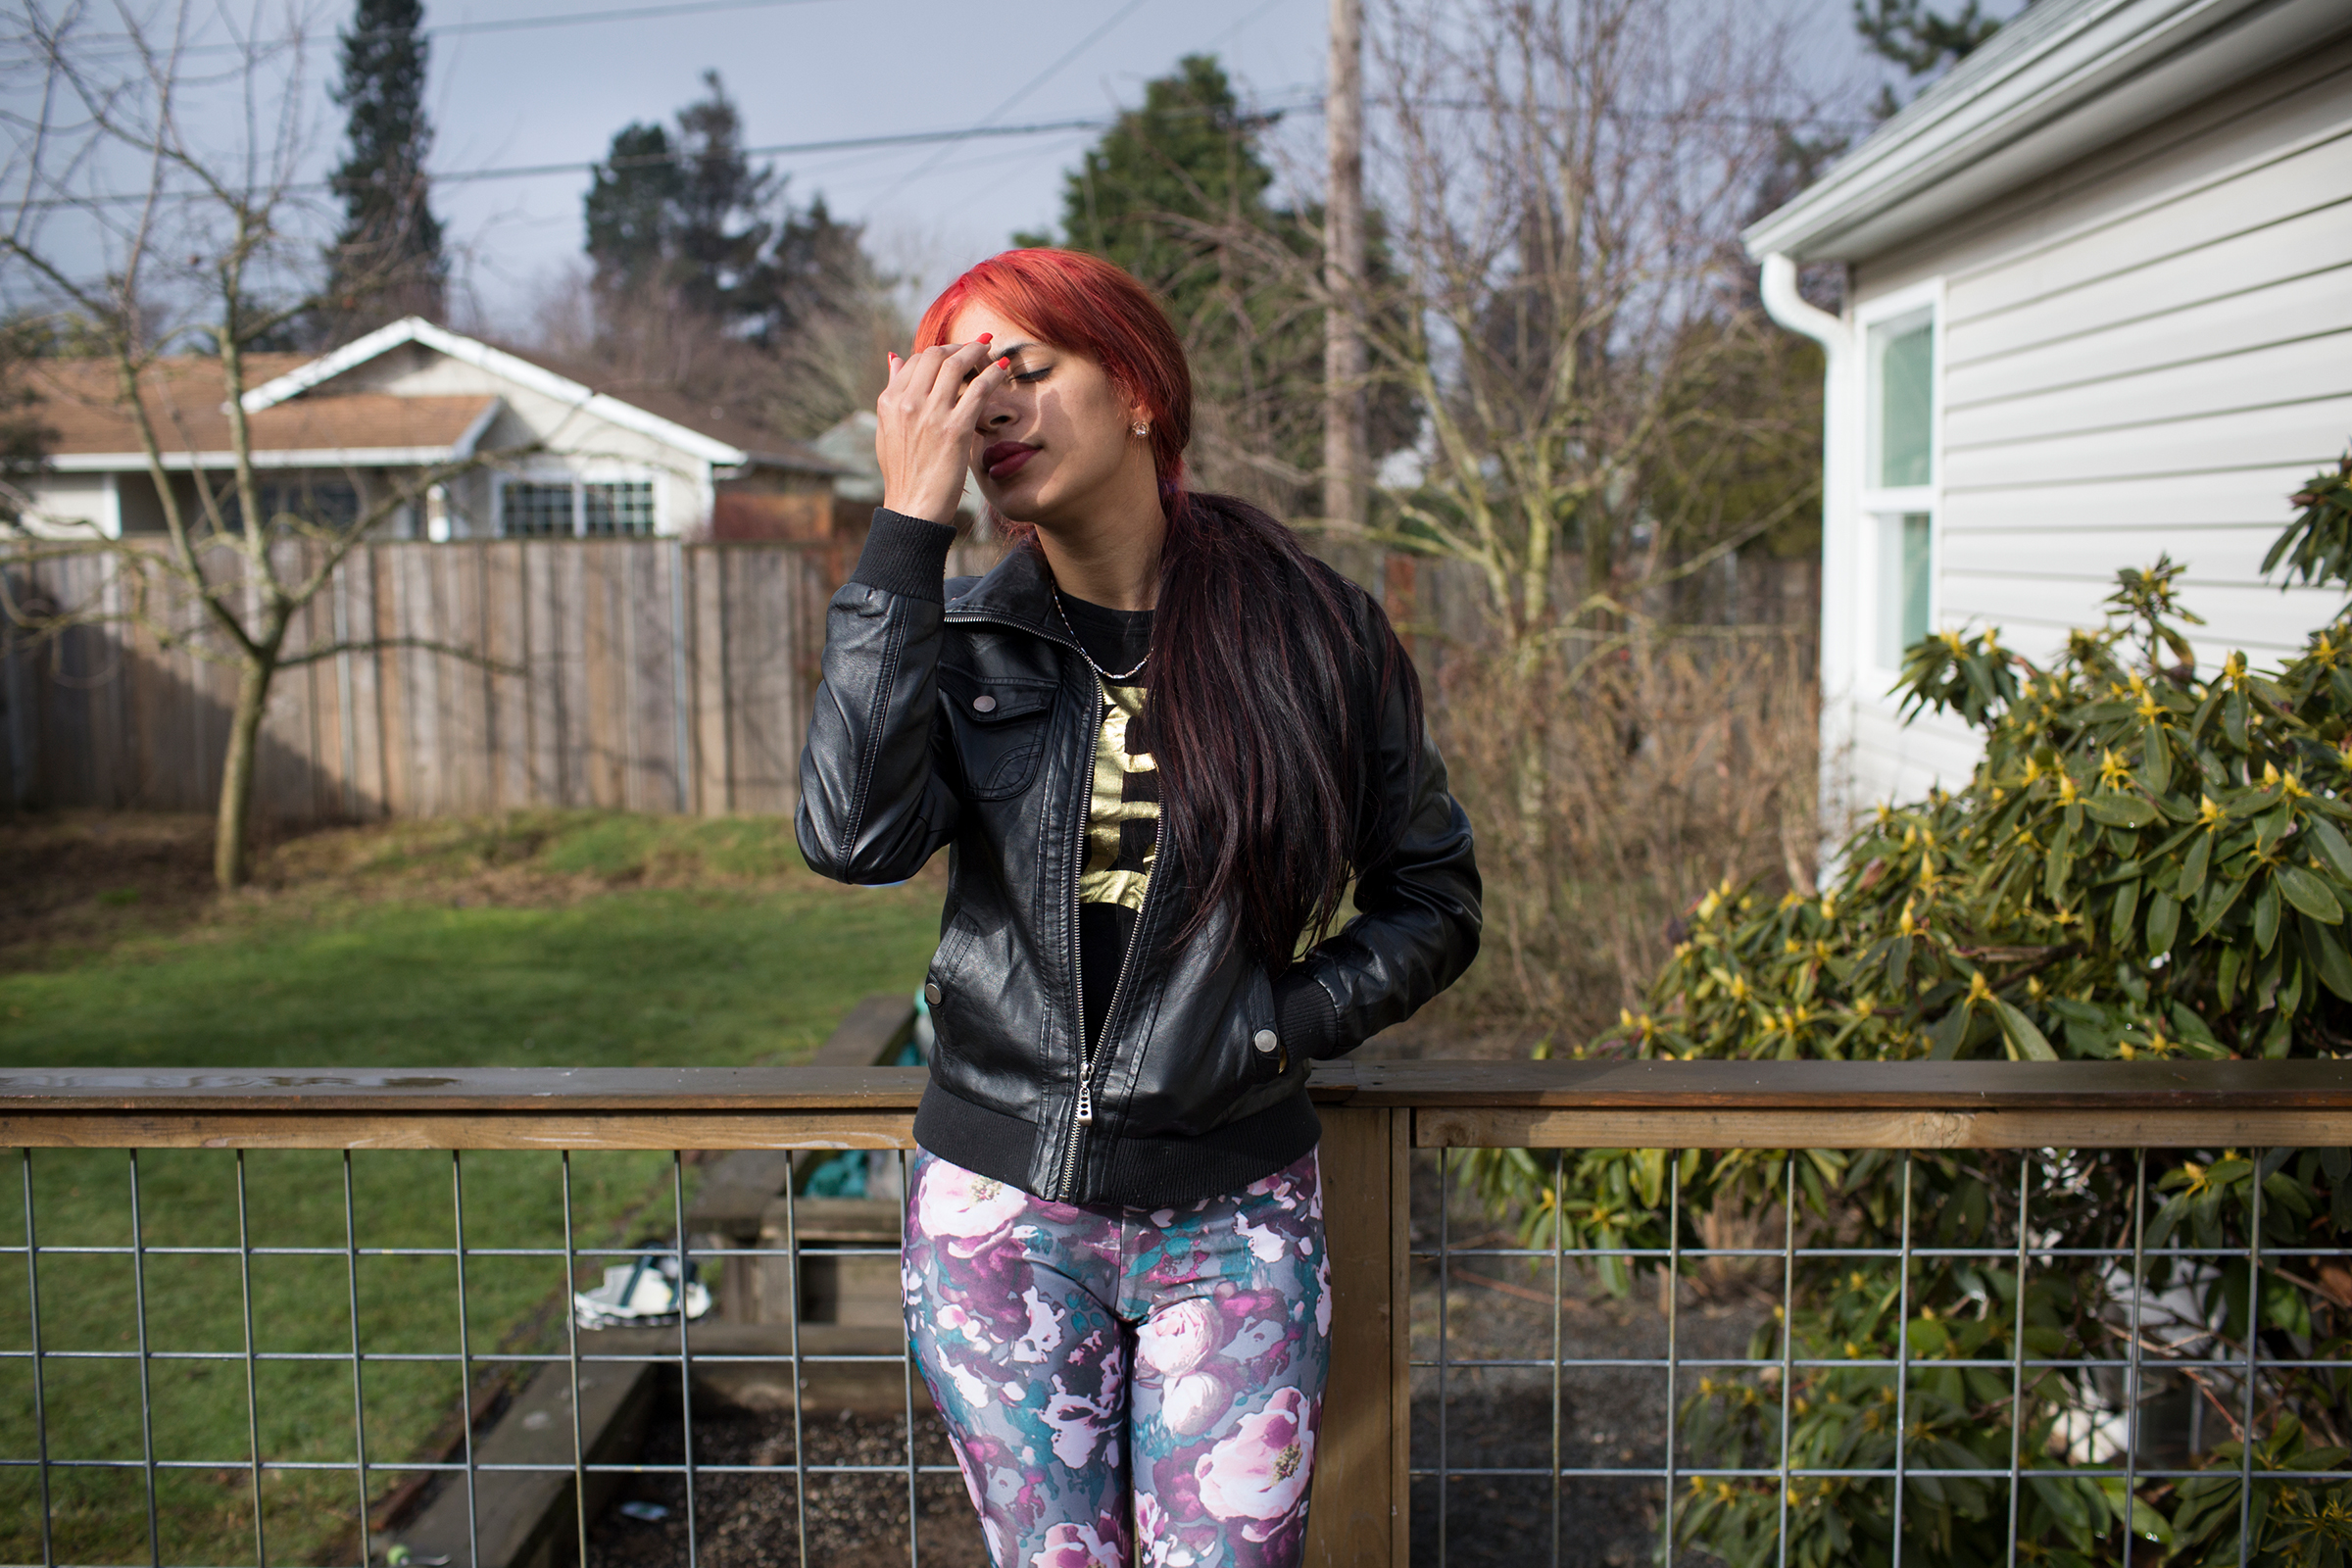 Liset in Portland, Ore., on Feb. 25, 2017, after a run in with the law awaiting her court date. She was picked up for using a fraudulent check that a Cuban friend had given her. She spent 12 days in jail and vowed to get on the right path.